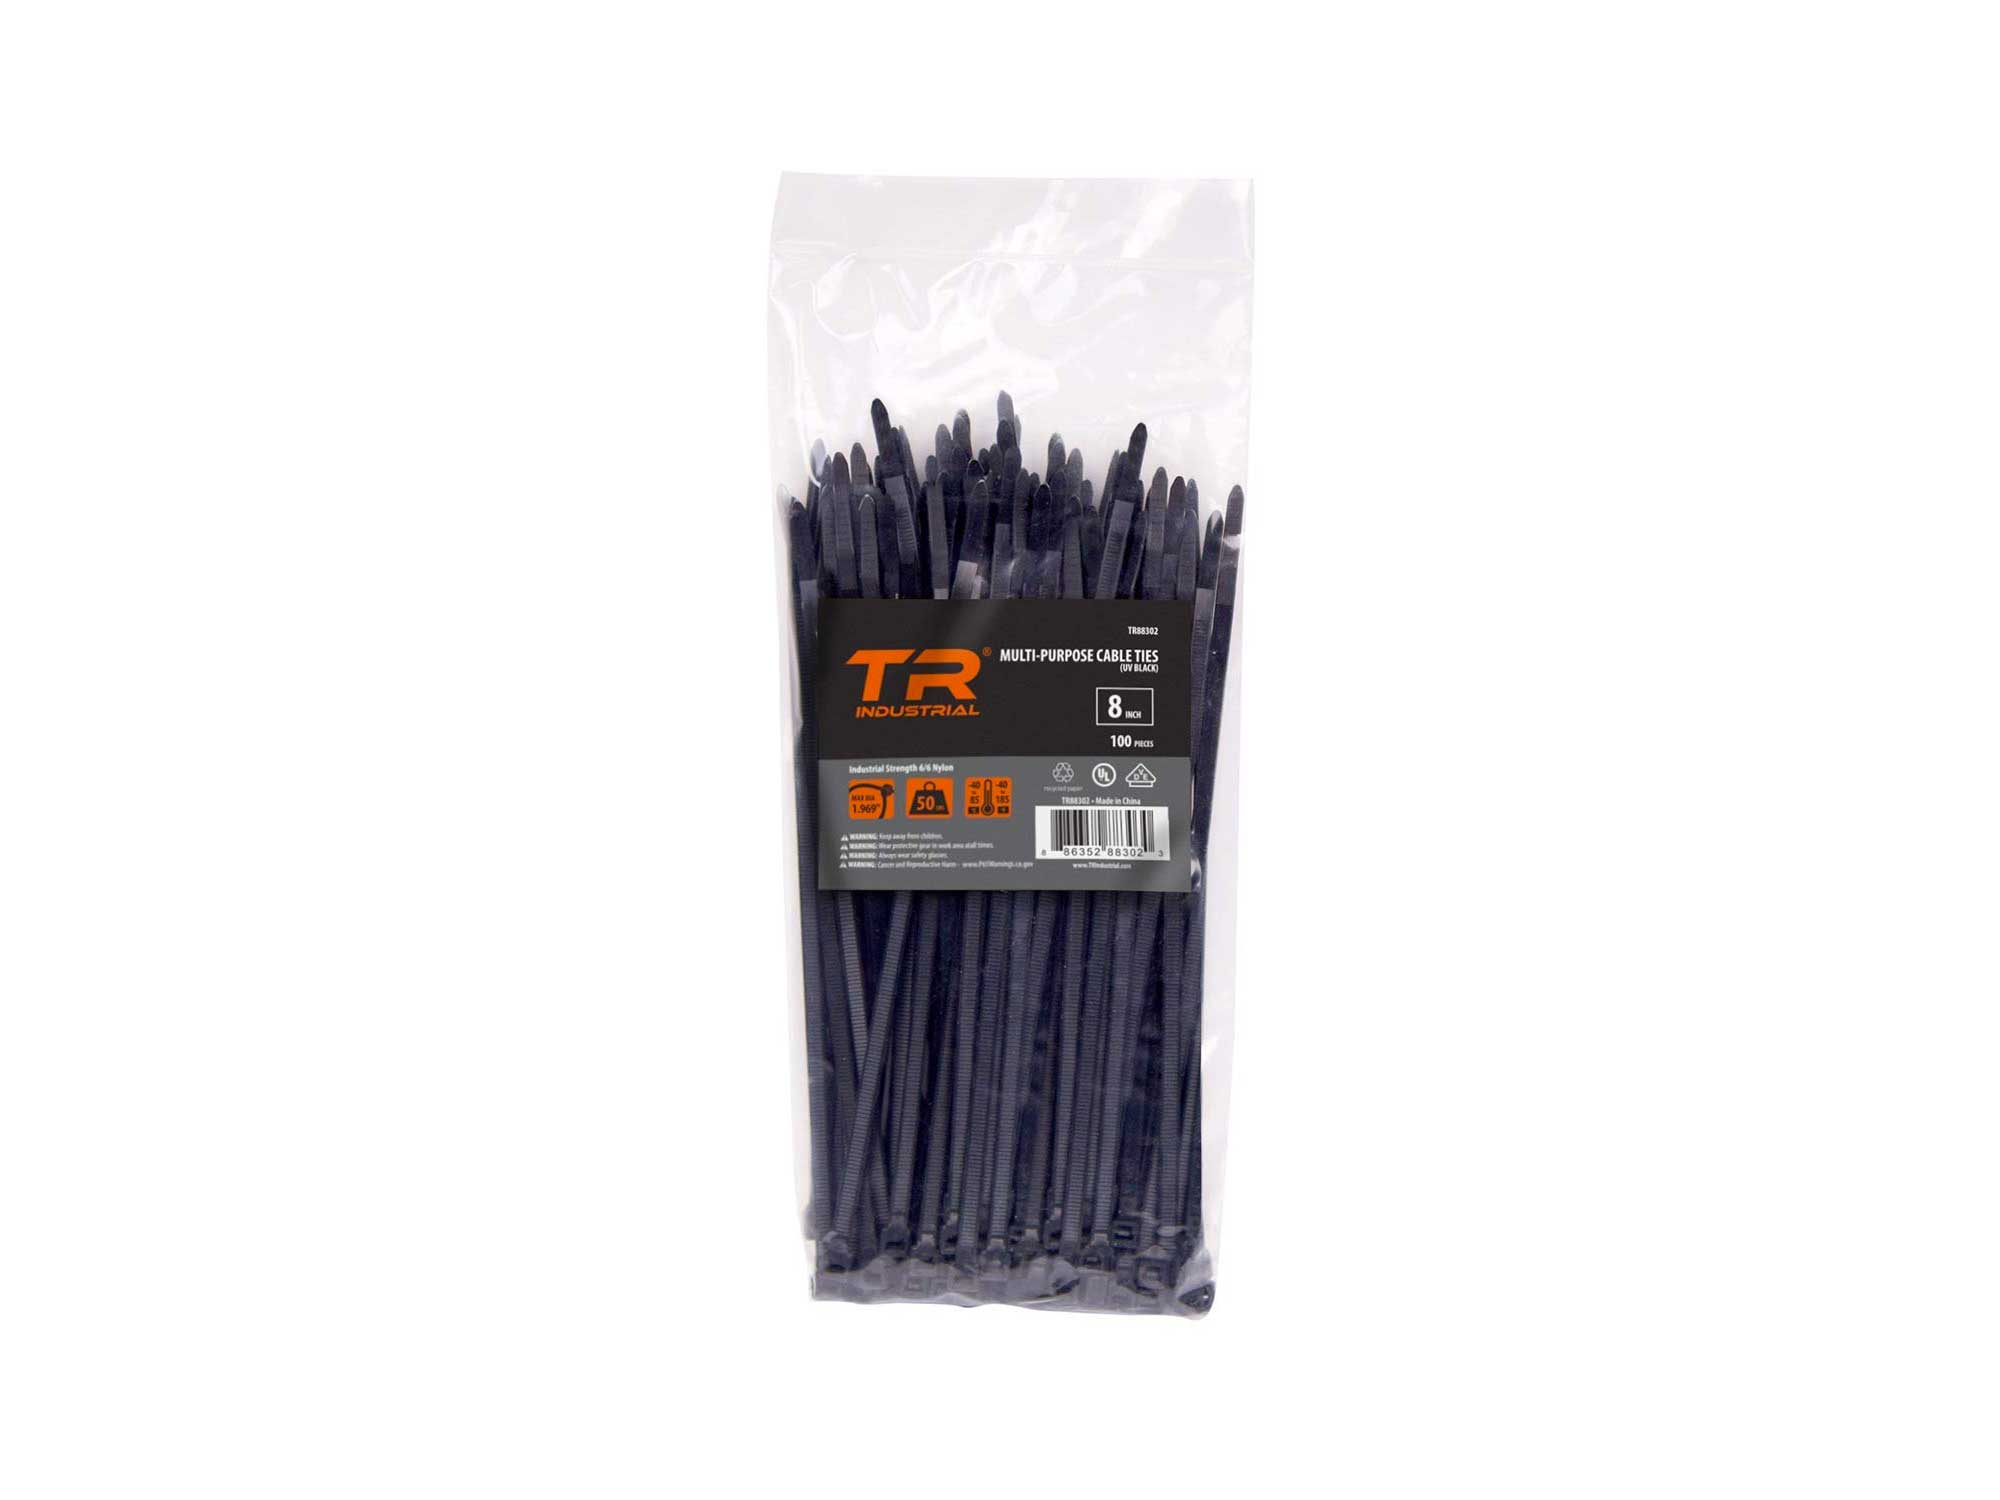 TR Industrial cable ties